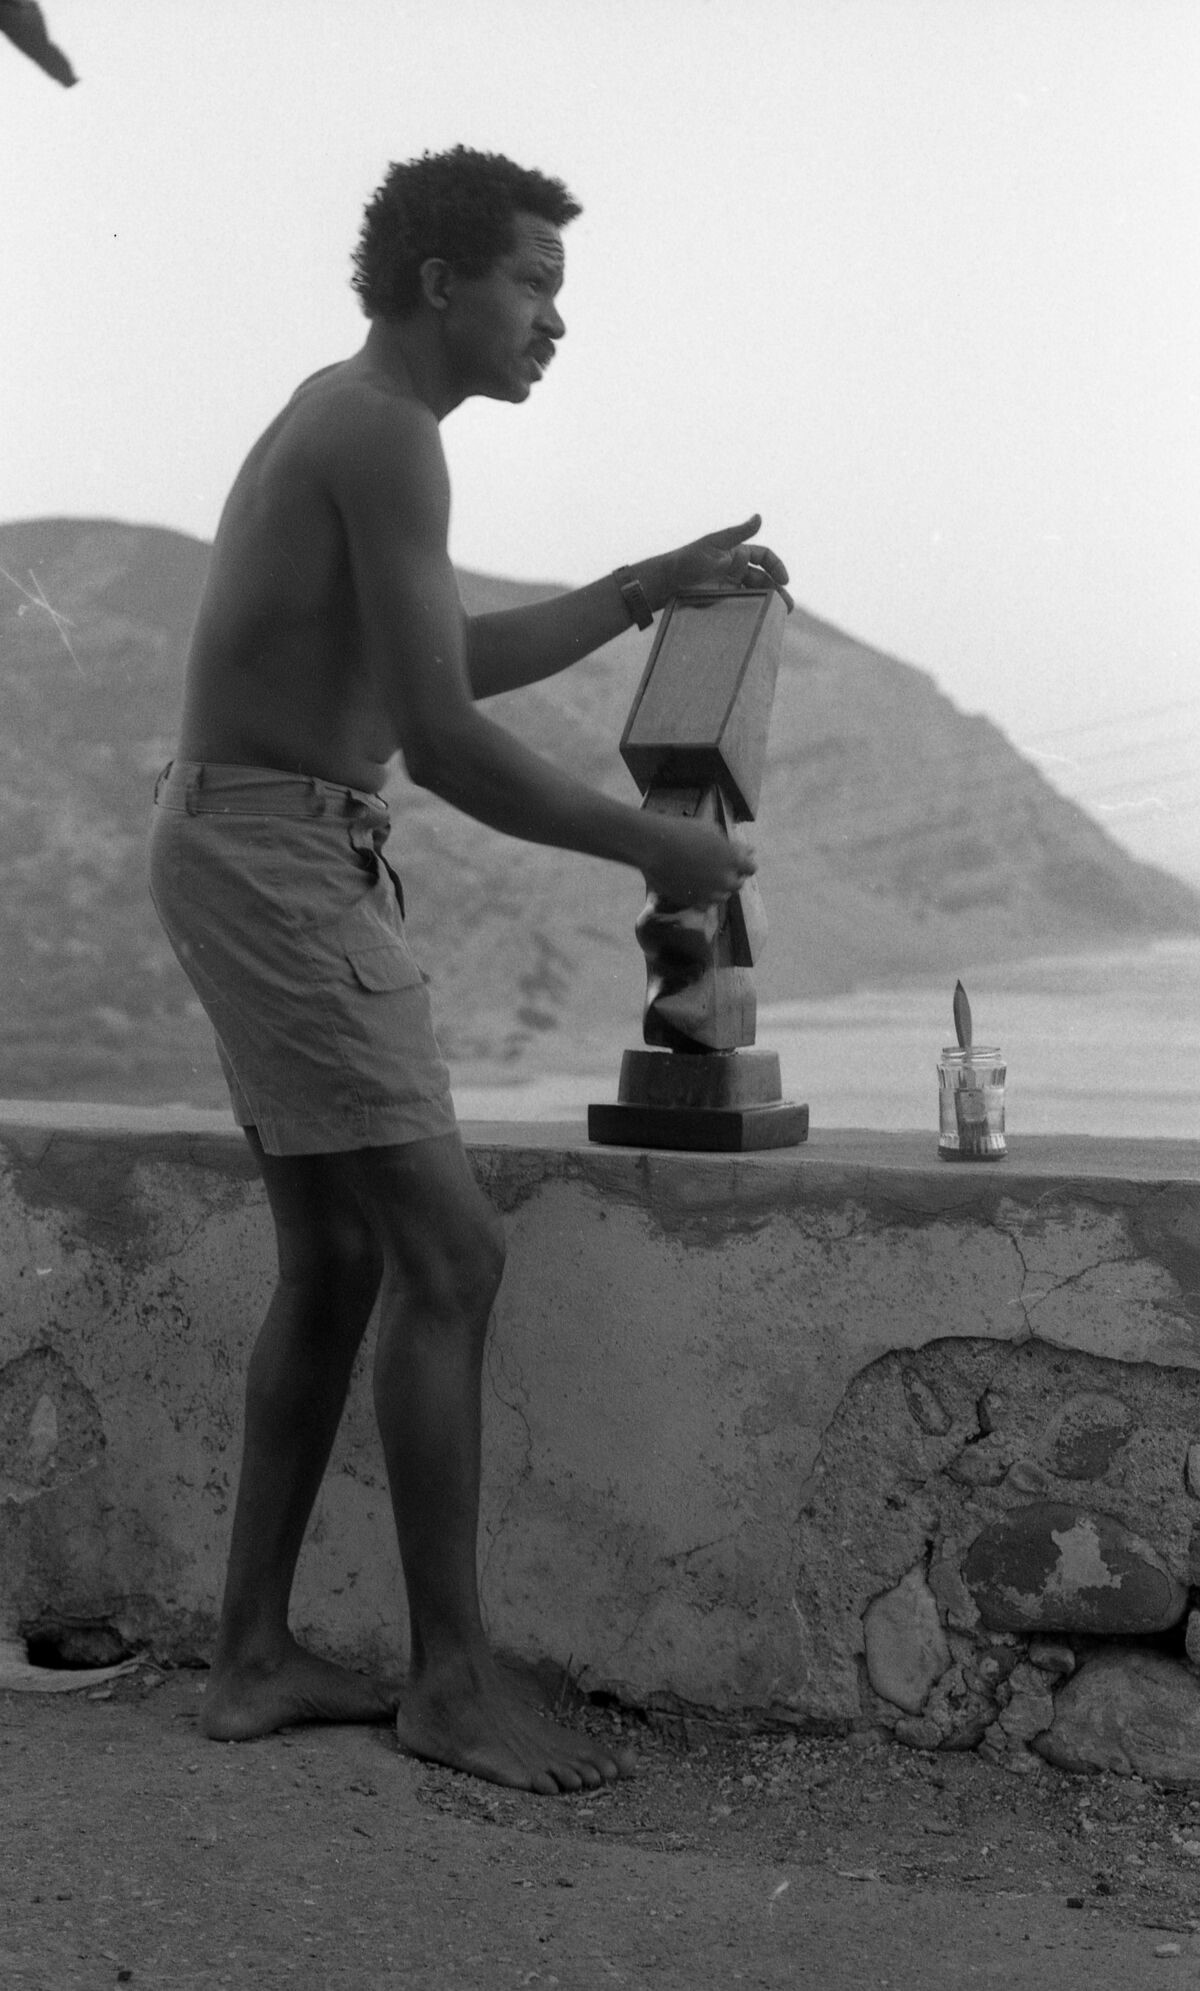 Jack Whitten withThe Guardian I, for Mary, Crete, 1983 or later. Photo by Paul Viani. Courtesy of the artist's estate, Hauser & Wirth, and the Baltimore Museum of Art.